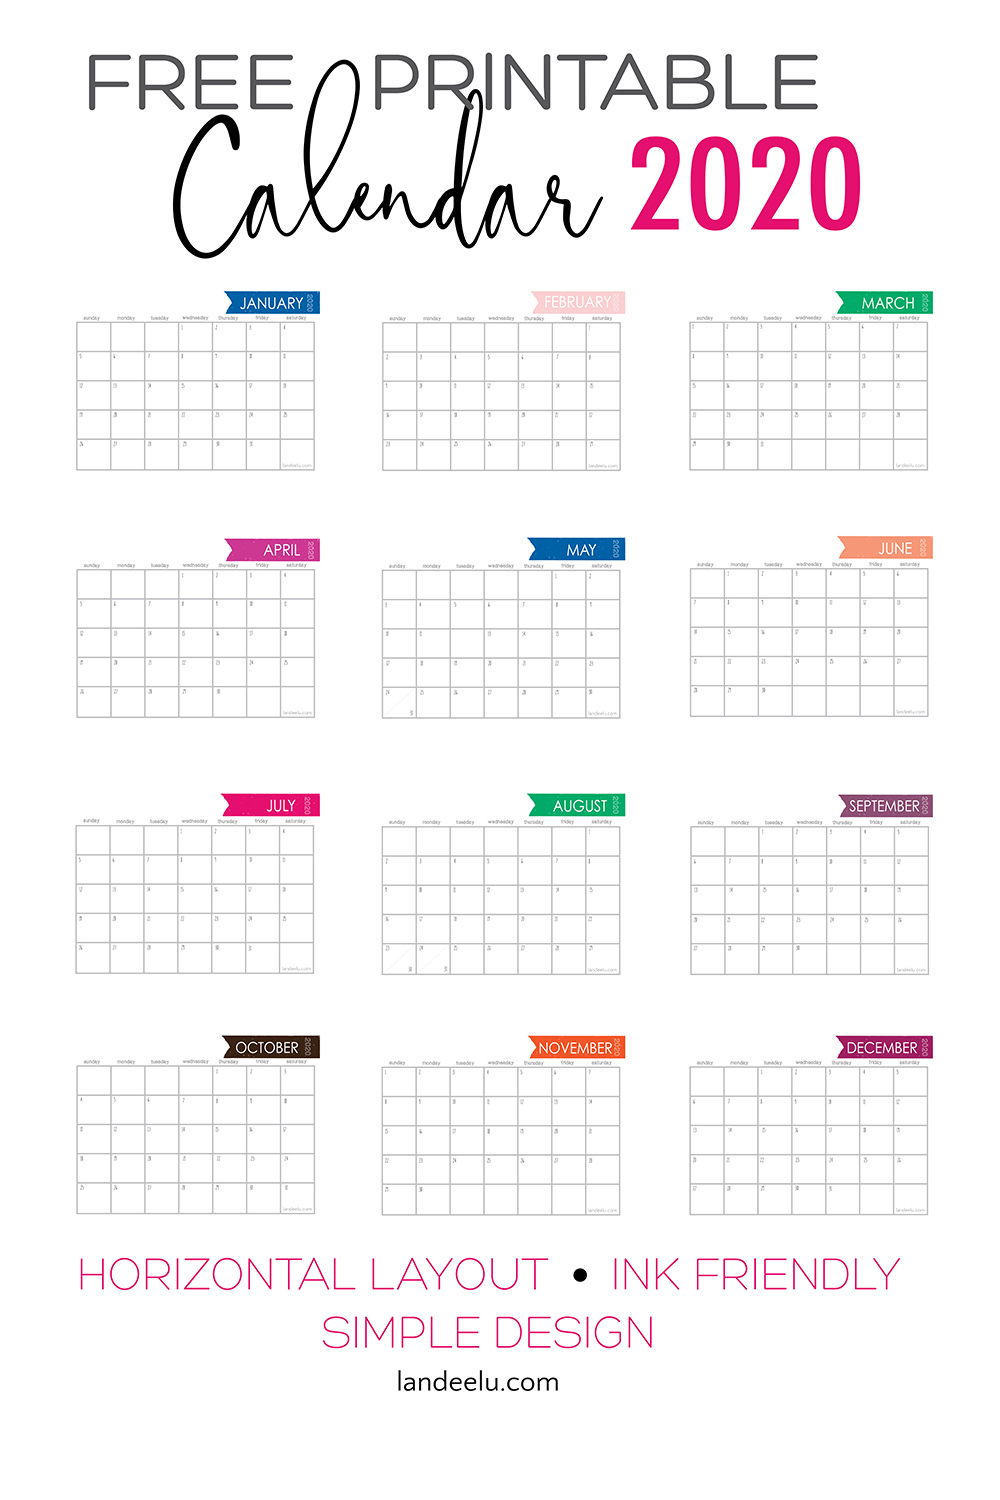 Free Printable Calendar for 2020! Ink friendly simple design gives you plenty of room to write! #printablecalendar #freecalendar #2020calendar #organization #freeprintable